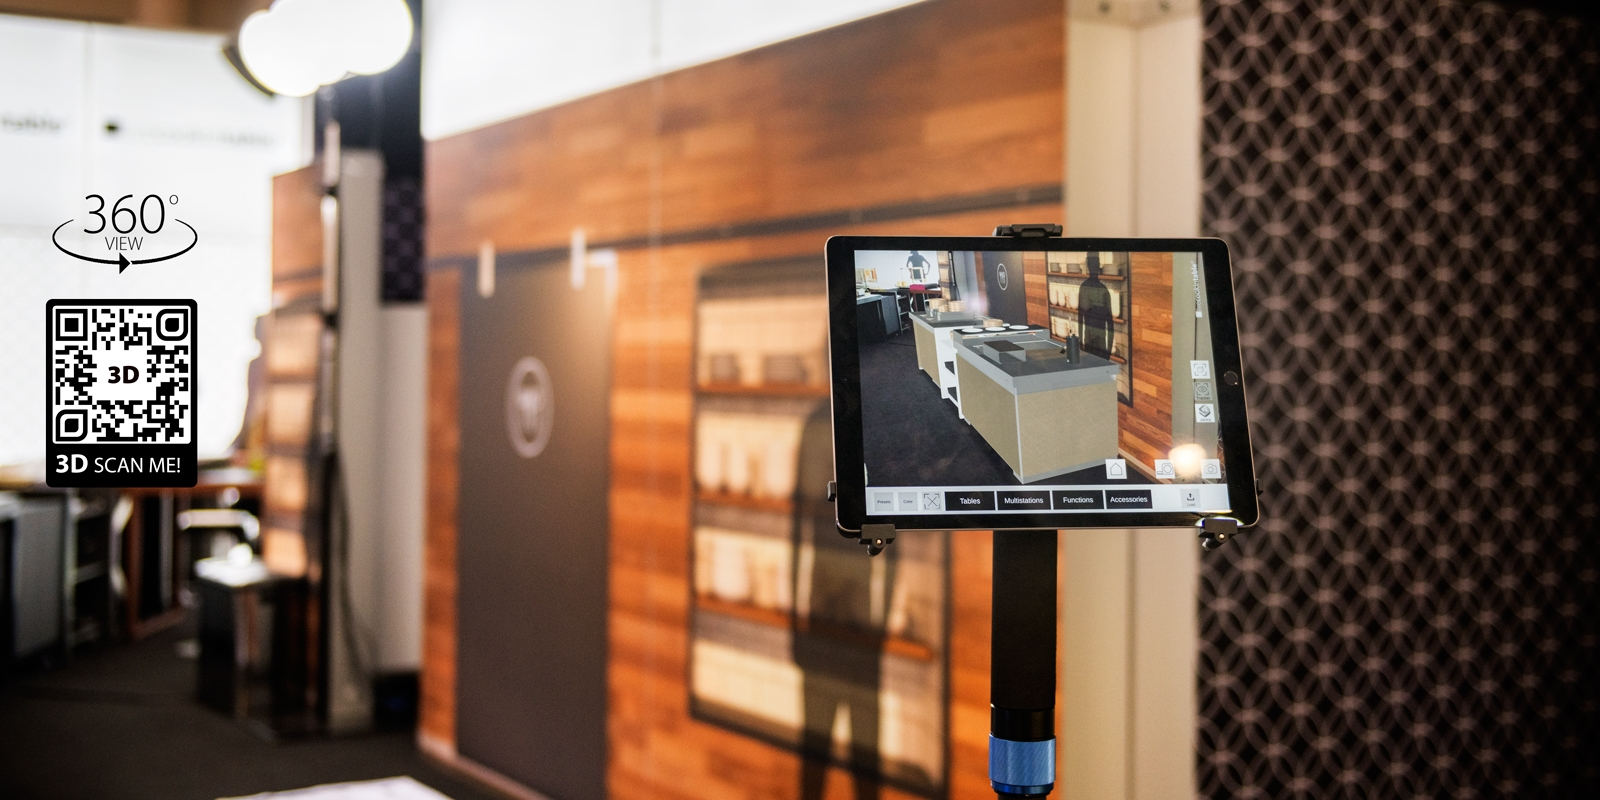 Livecookintable sets the trends 2019 at Hotelex Shanghai